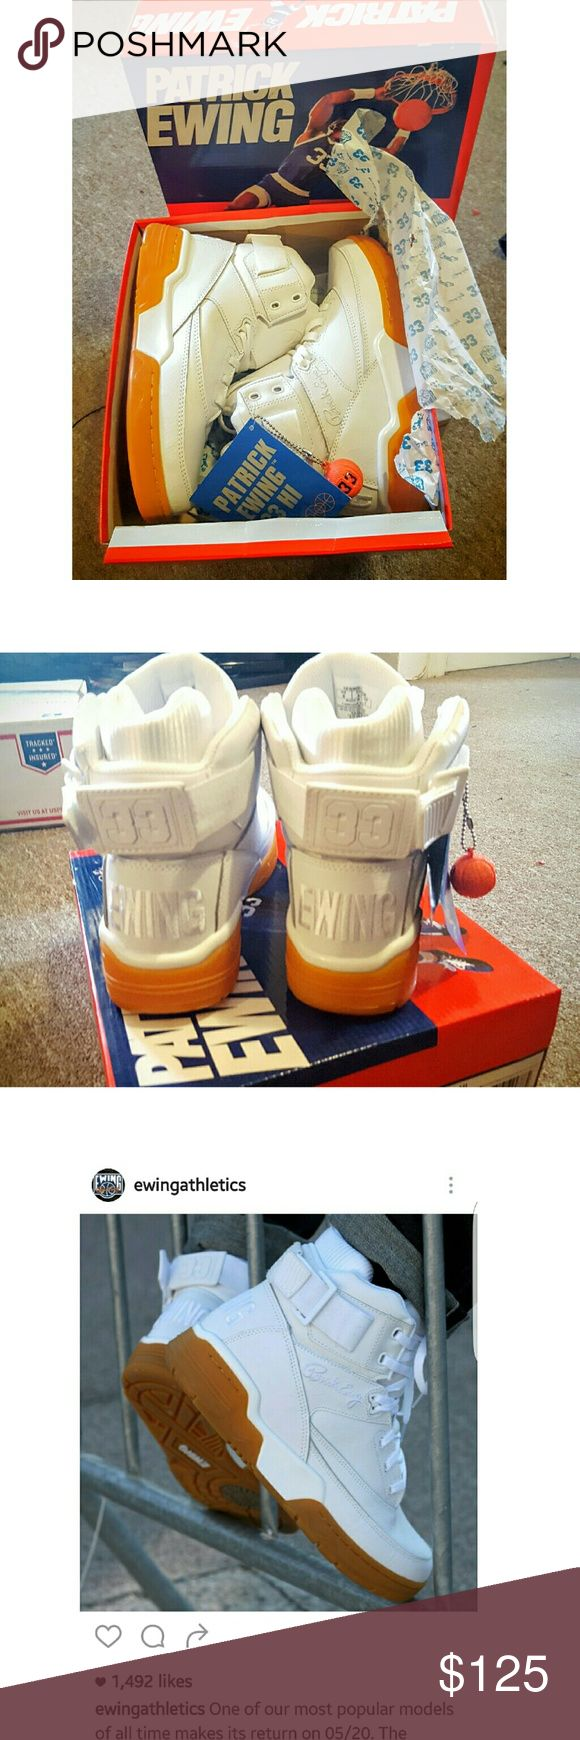 Patrick Ewing 🏀 33 Hi White gum Authentic💯bought them direct from flight club in NYC. Used one time only for 1 hour. Excellent condition 👌Like new. If you have any  questions feel free to contact me!    Offers Welcome !   🛇no trades🚫 Patrick Ewing  Shoes Sneakers